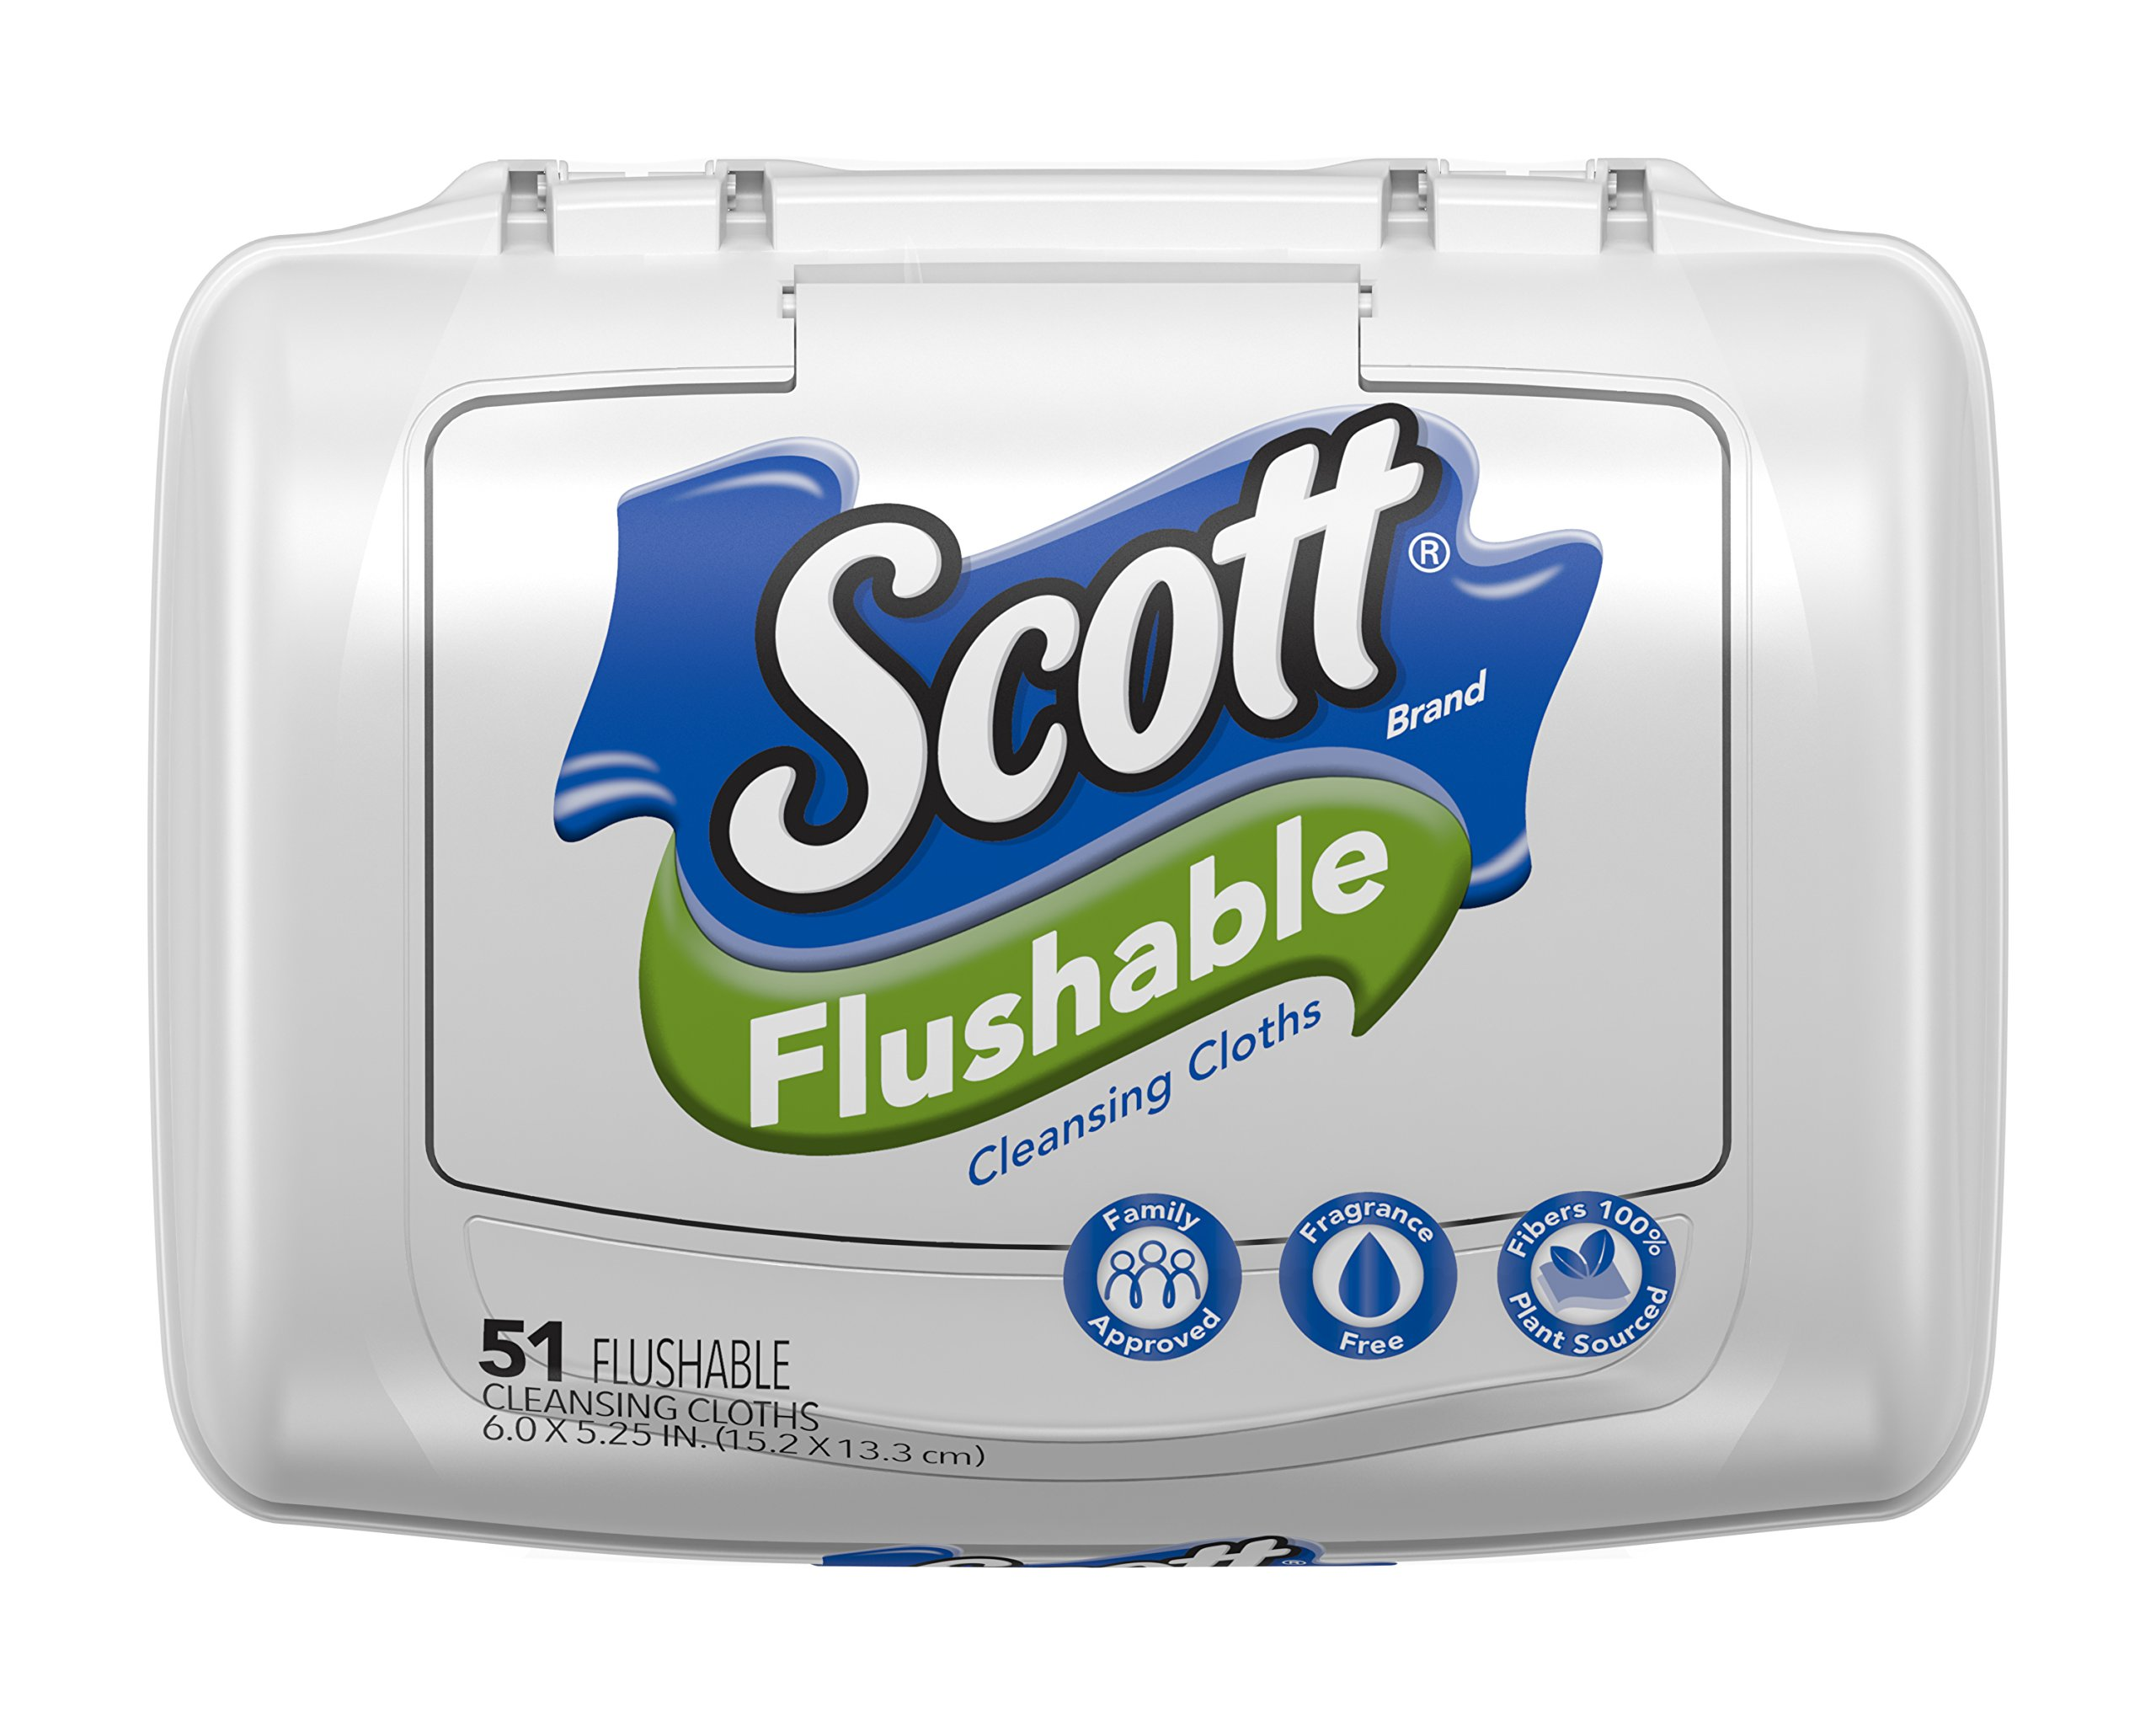 Scott Flushable Wipes, Fragrance-Free, 8 Tubs with 408 Wet Wipes Total by Scott